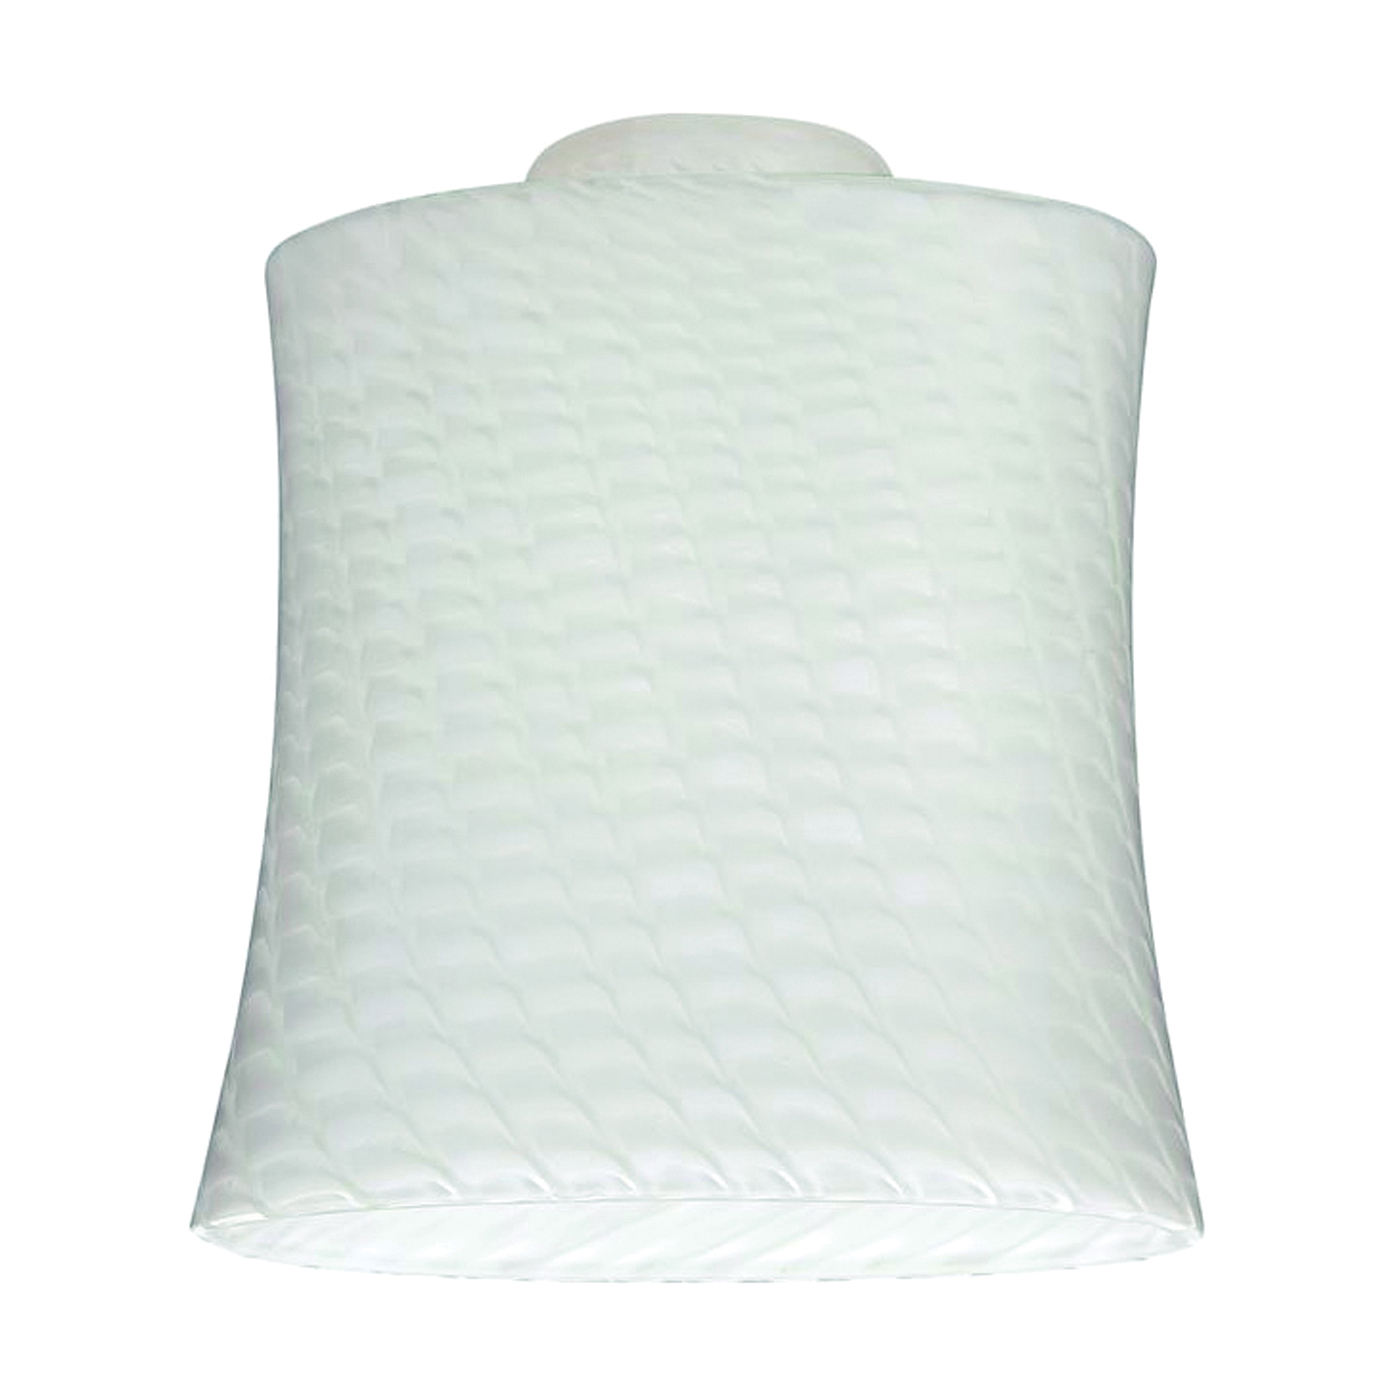 Picture of Westinghouse 8141200 Light Shade, Slightly Flared, Glass, White